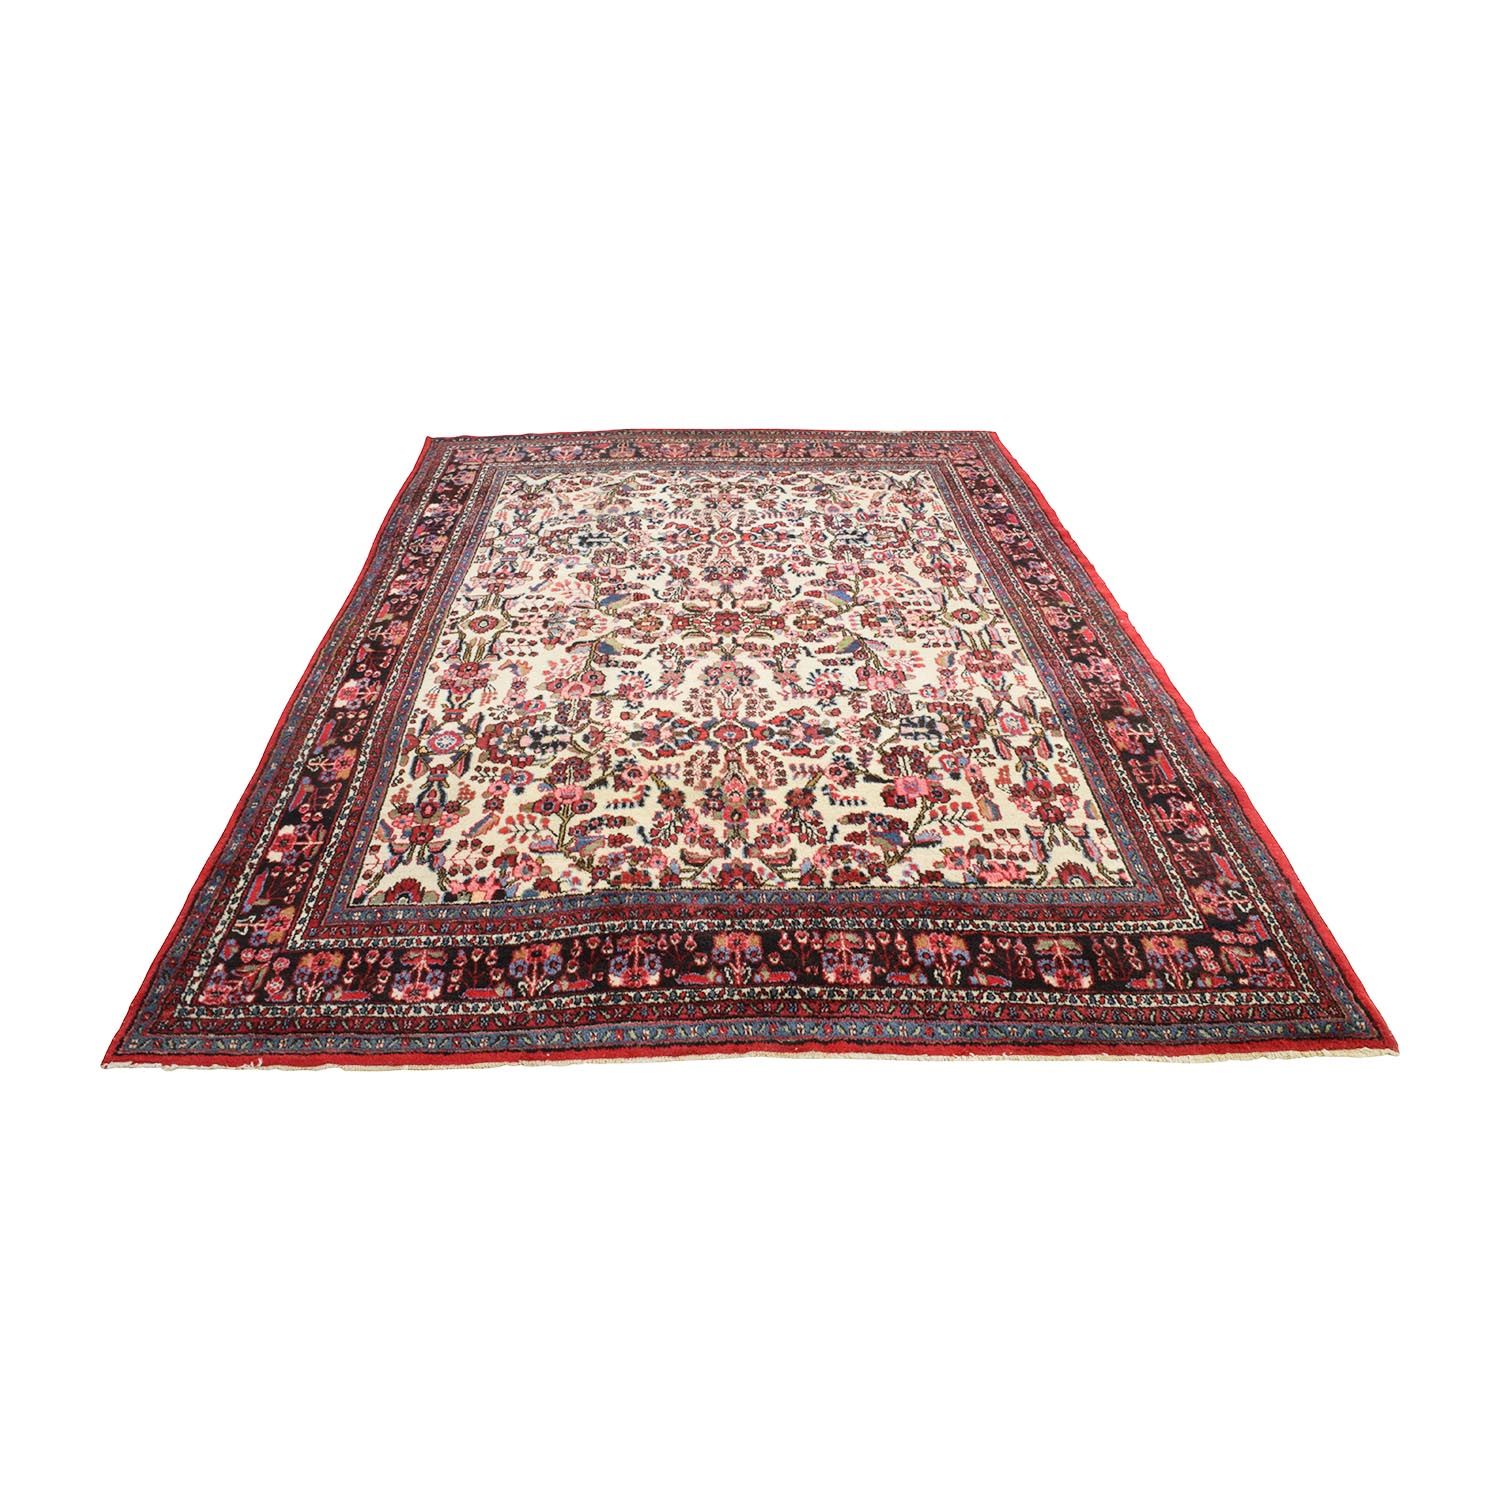 Handmade Vintage Red Persian Rug discount